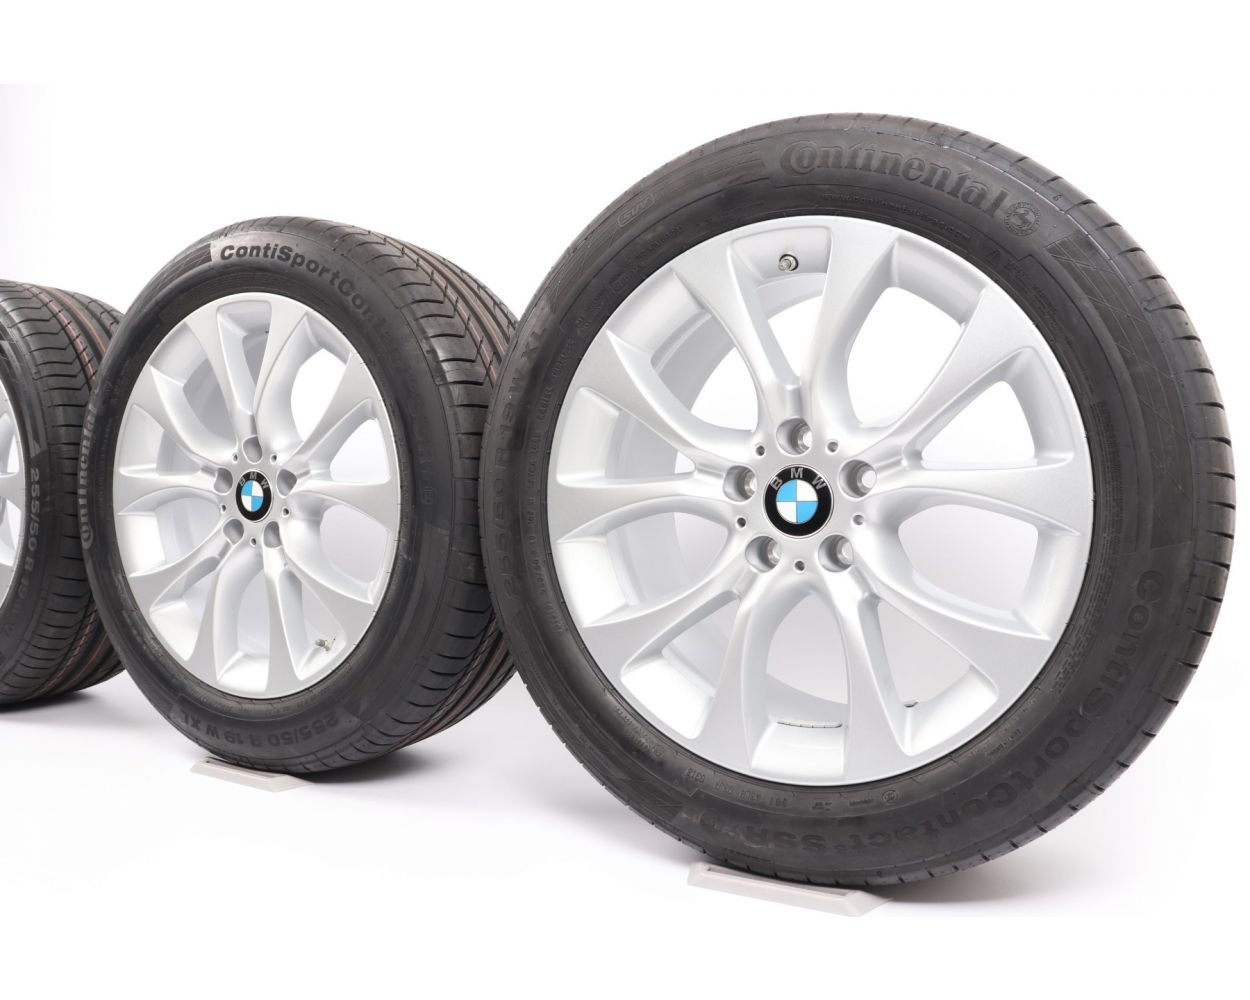 Bmw Summer Wheels X5 F15 E70 19 Zoll 450 V Spoke Rdc Silber